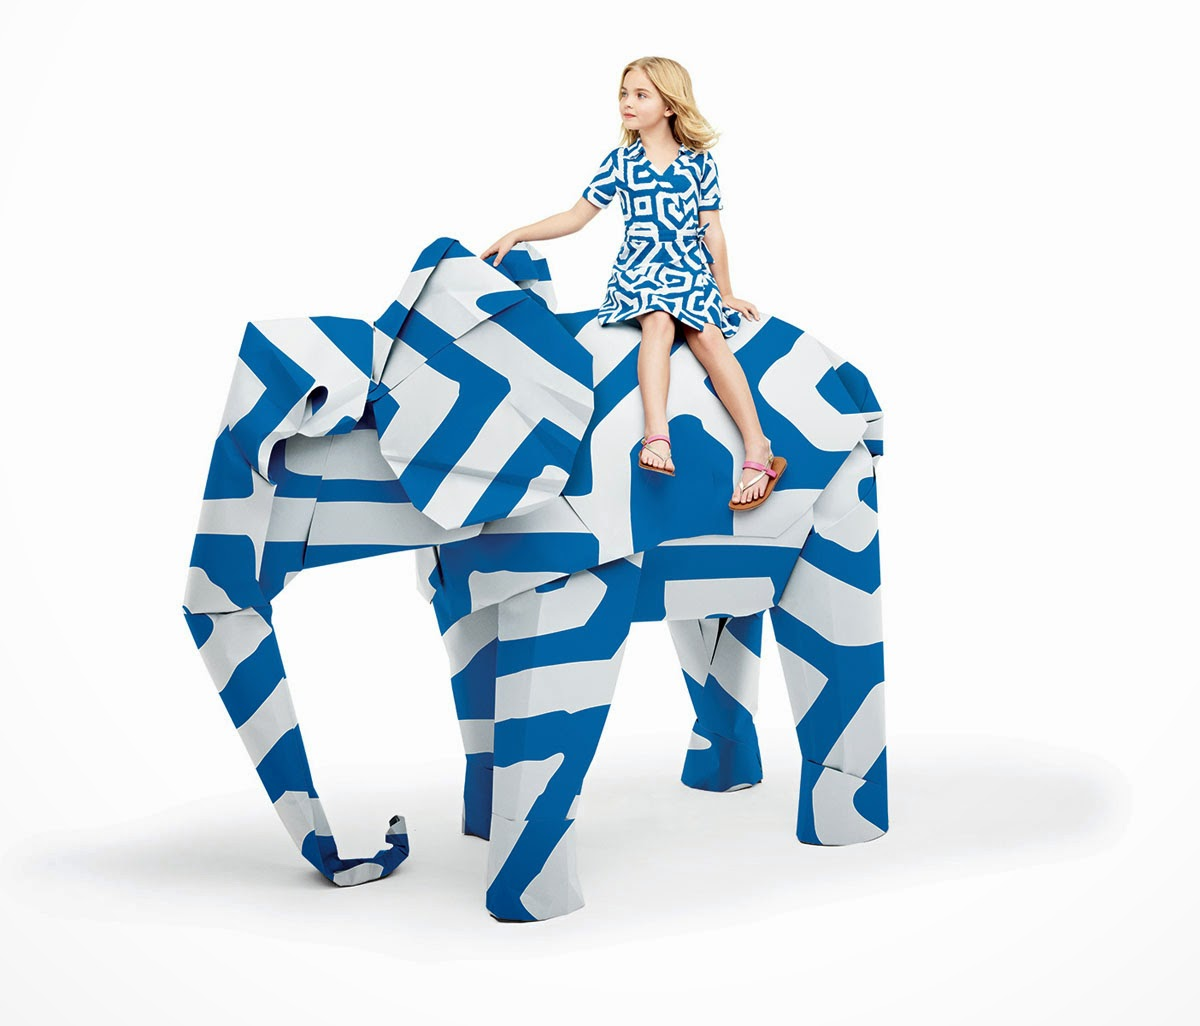 Kids Fashion Photography by Stefano Azario 81